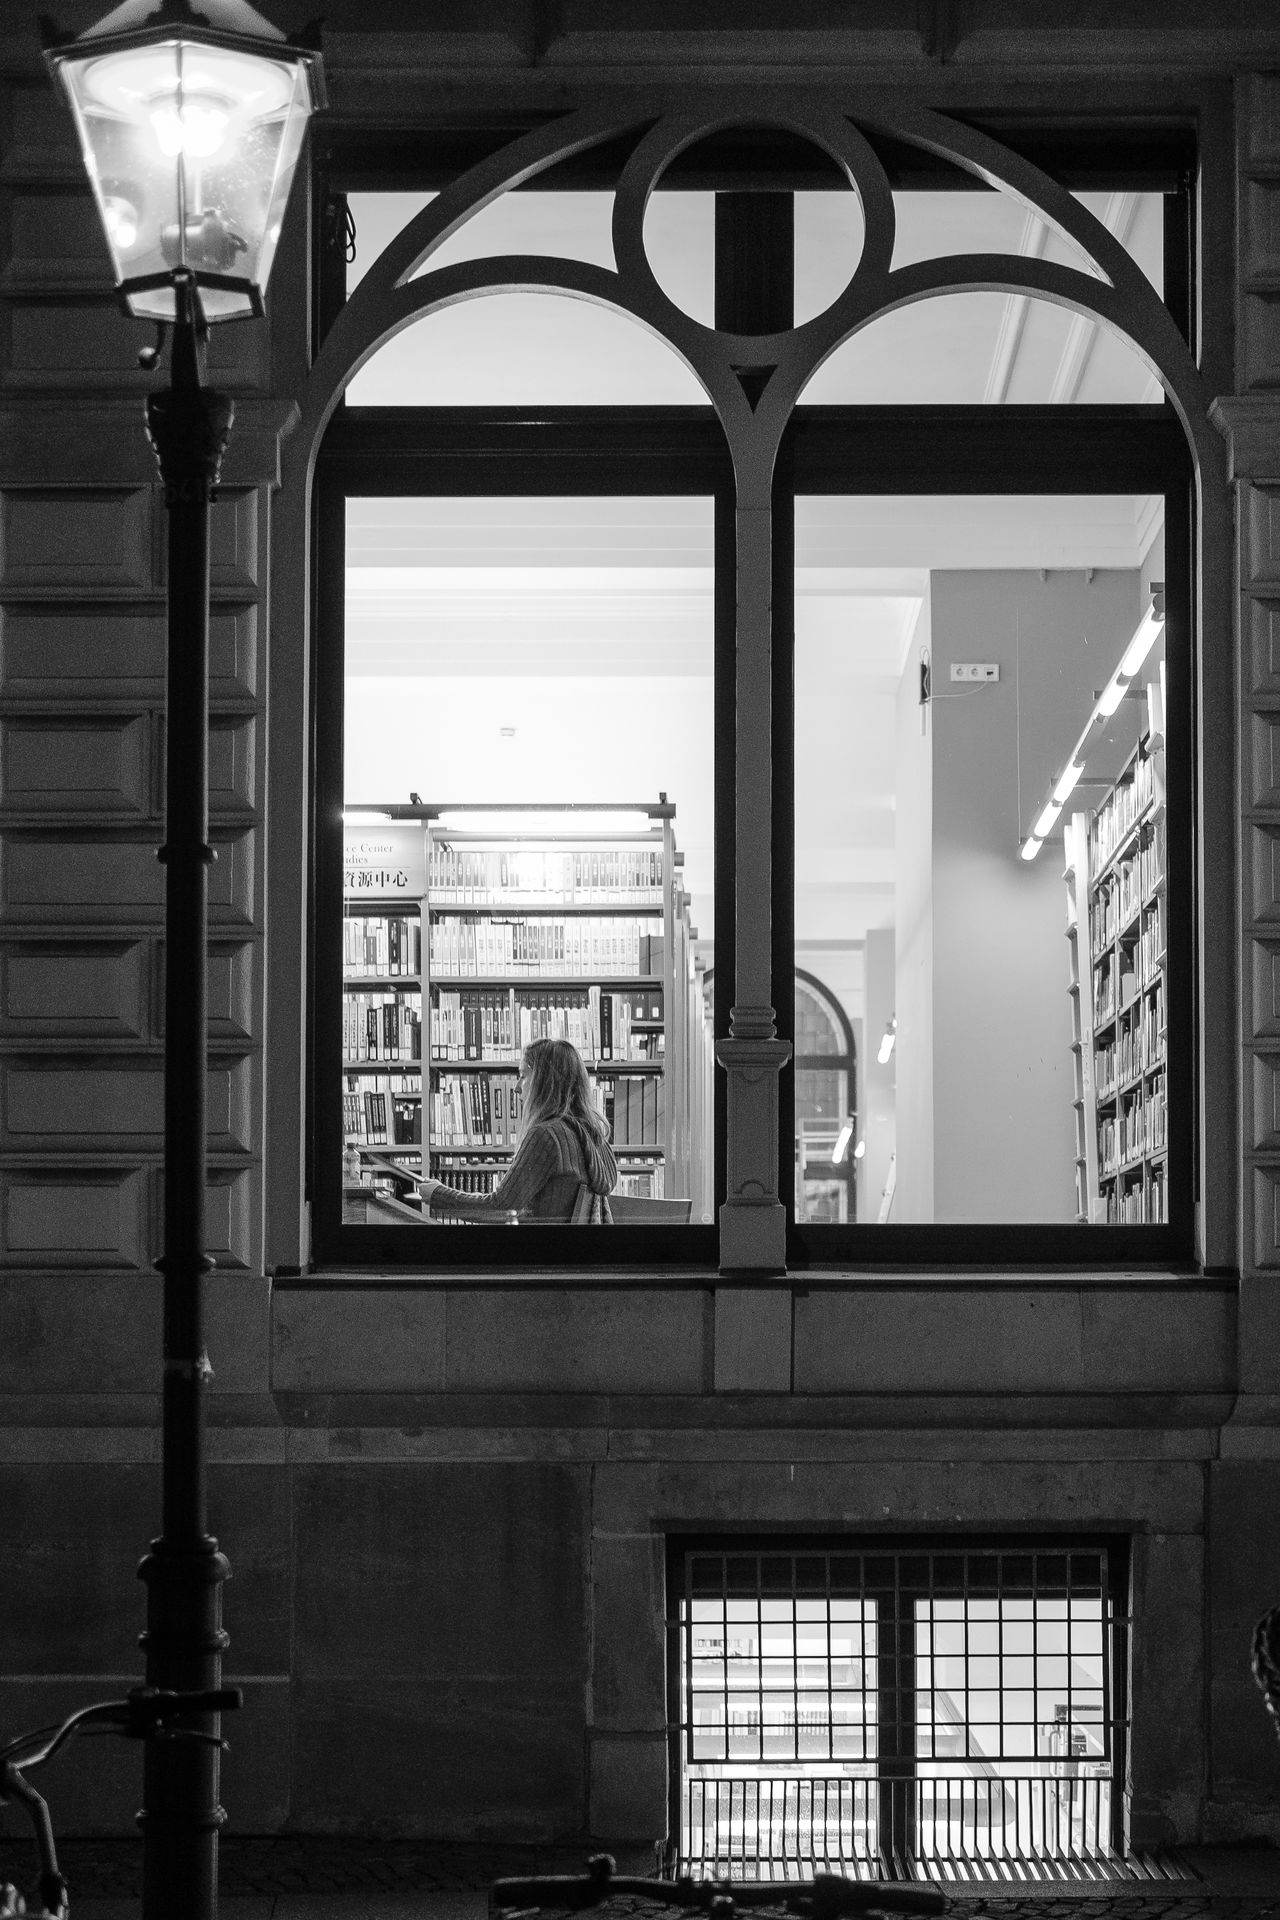 Window view Architecture Black & White Black And White Blackandwhite Blackandwhite Photography Building Exterior Built Structure City Indoors  Street Photography Streetphotography VSCO Vscocam Window